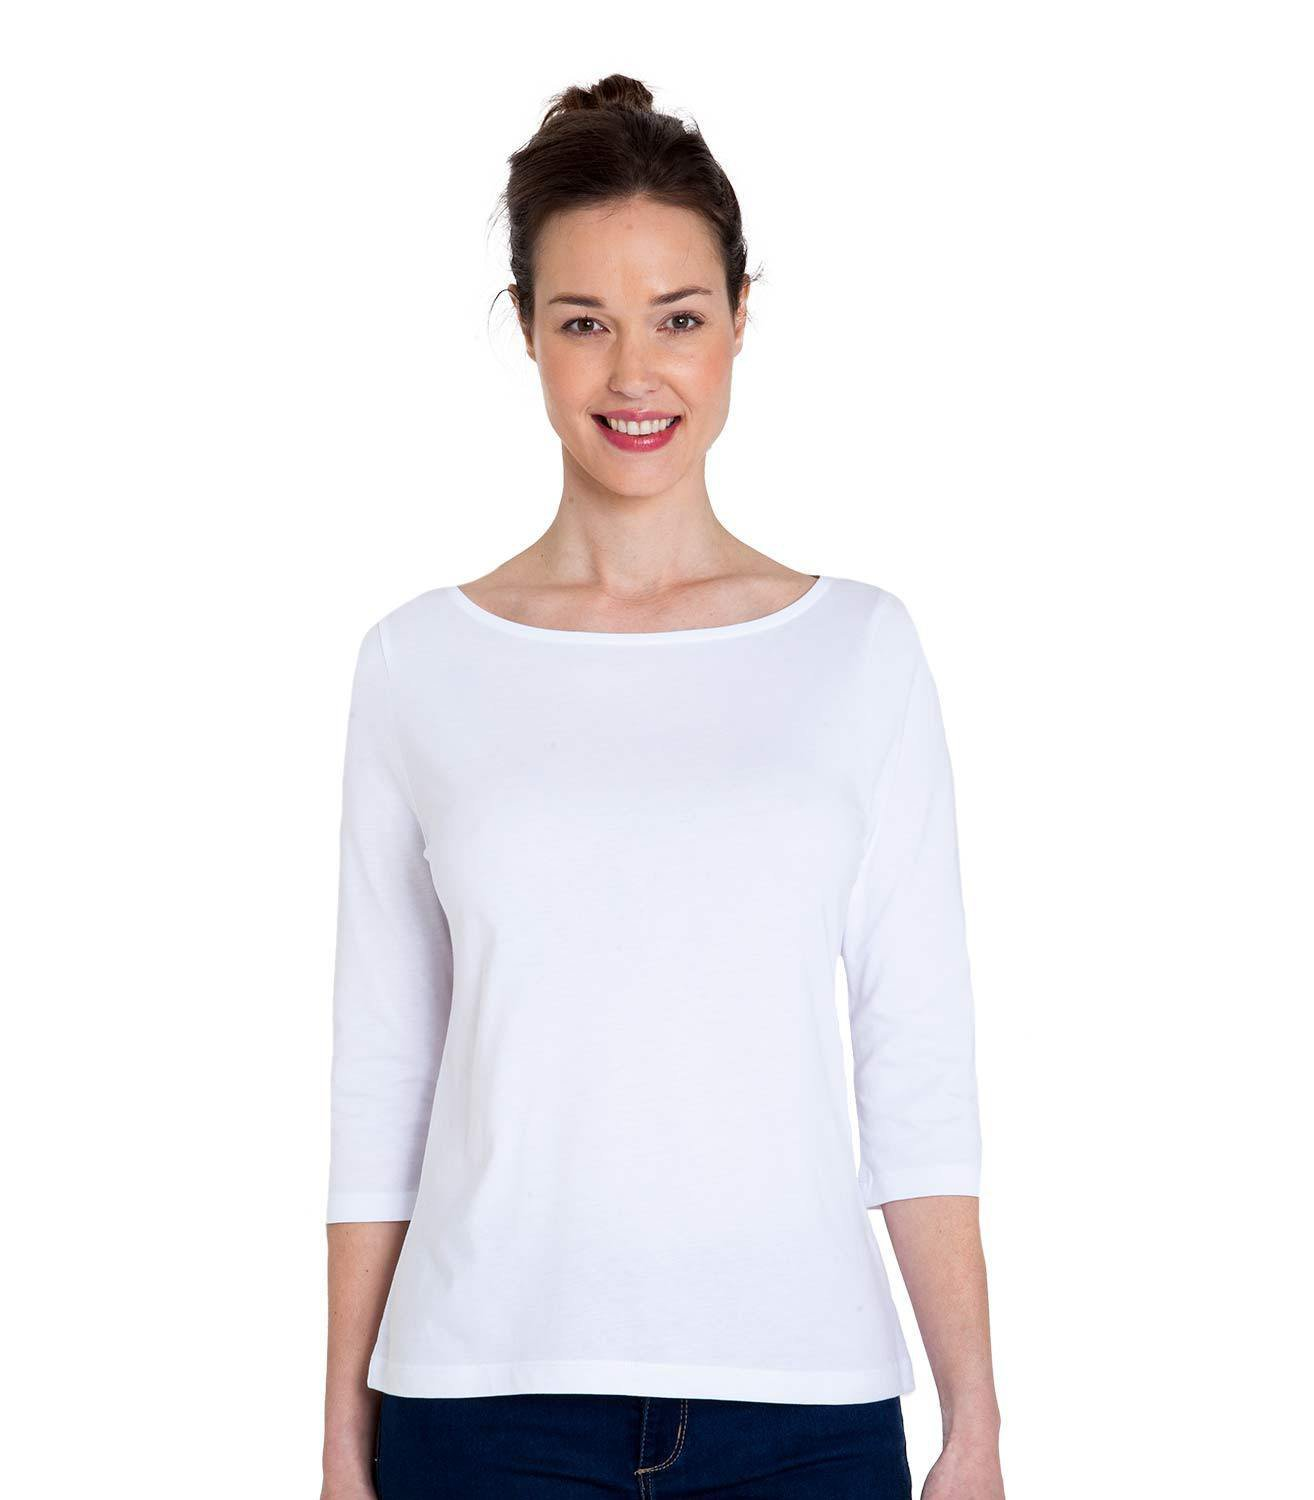 WoolOvers Womens Jersey 3/4 Sleeve Boat Neck Classic Casual T-Shirt Tee Top